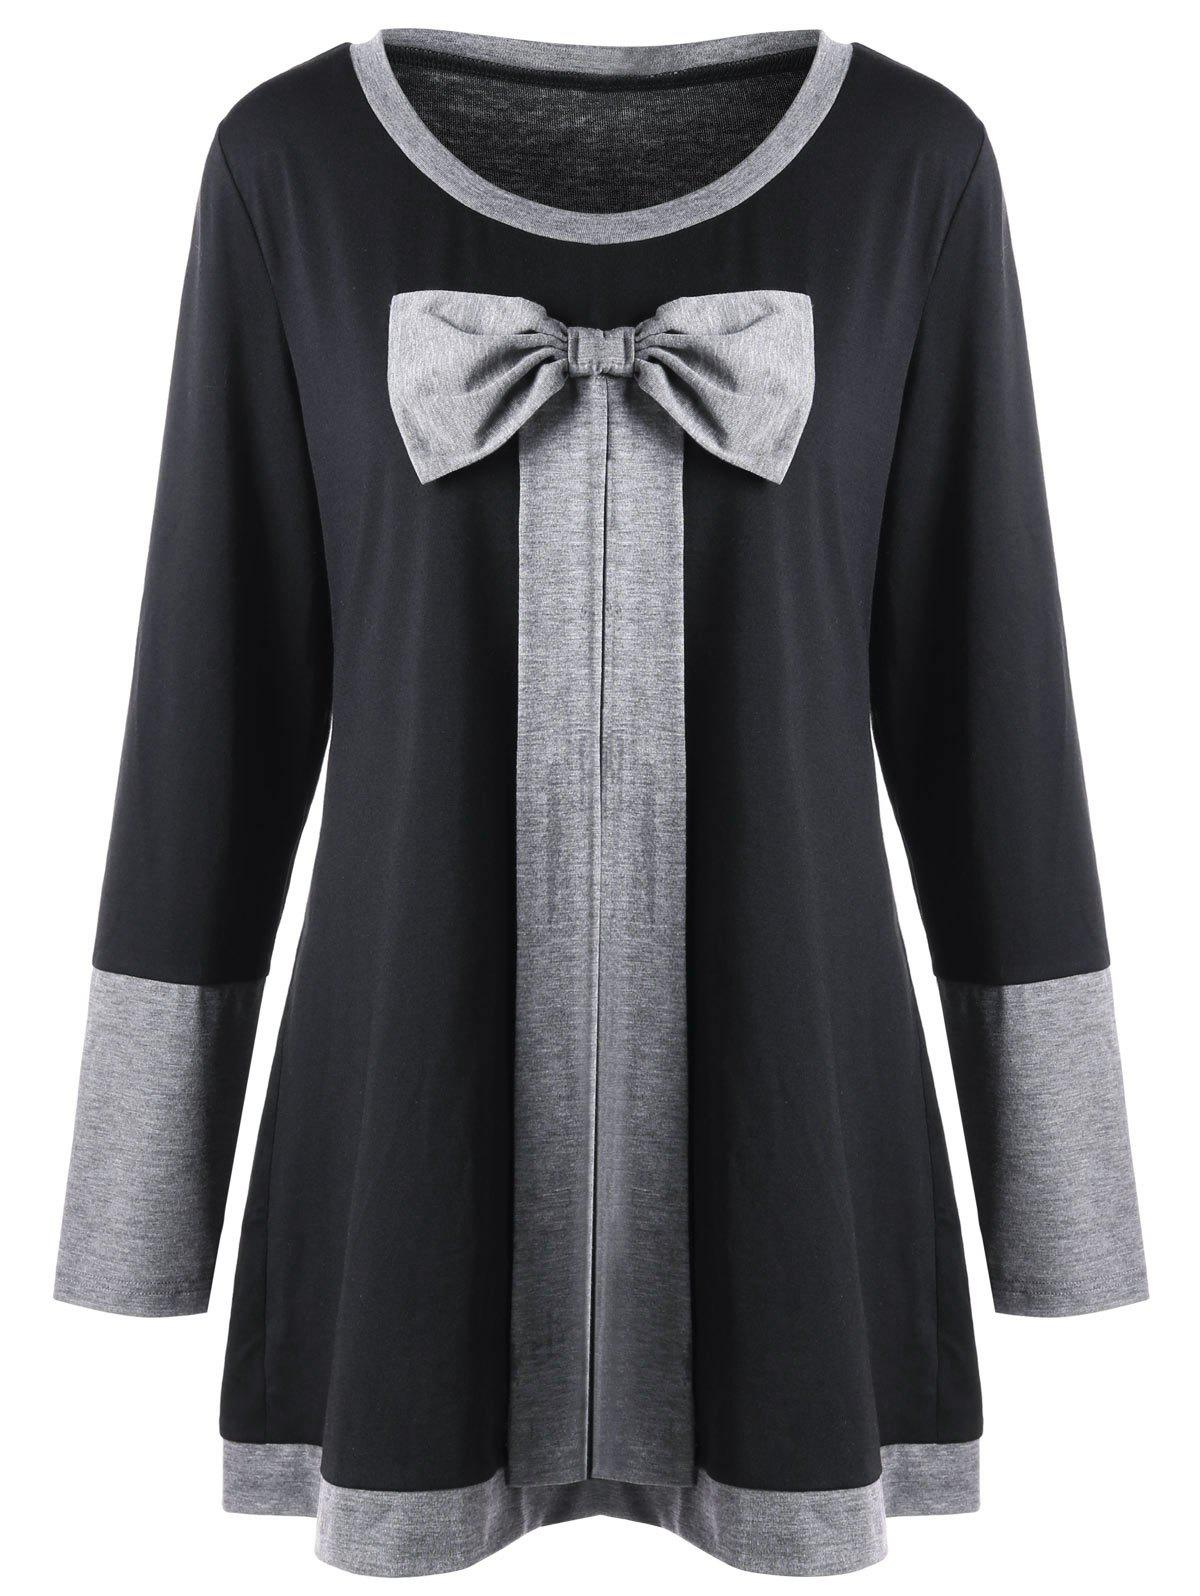 Plus Size Bowknot Embellished Longline TopWOMEN<br><br>Size: 3XL; Color: BLACK; Material: Polyester,Spandex; Shirt Length: Long; Sleeve Length: Full; Collar: Round Neck; Style: Casual; Season: Fall,Spring; Embellishment: Bowknot; Pattern Type: Solid; Weight: 0.3500kg; Package Contents: 1 x Top;